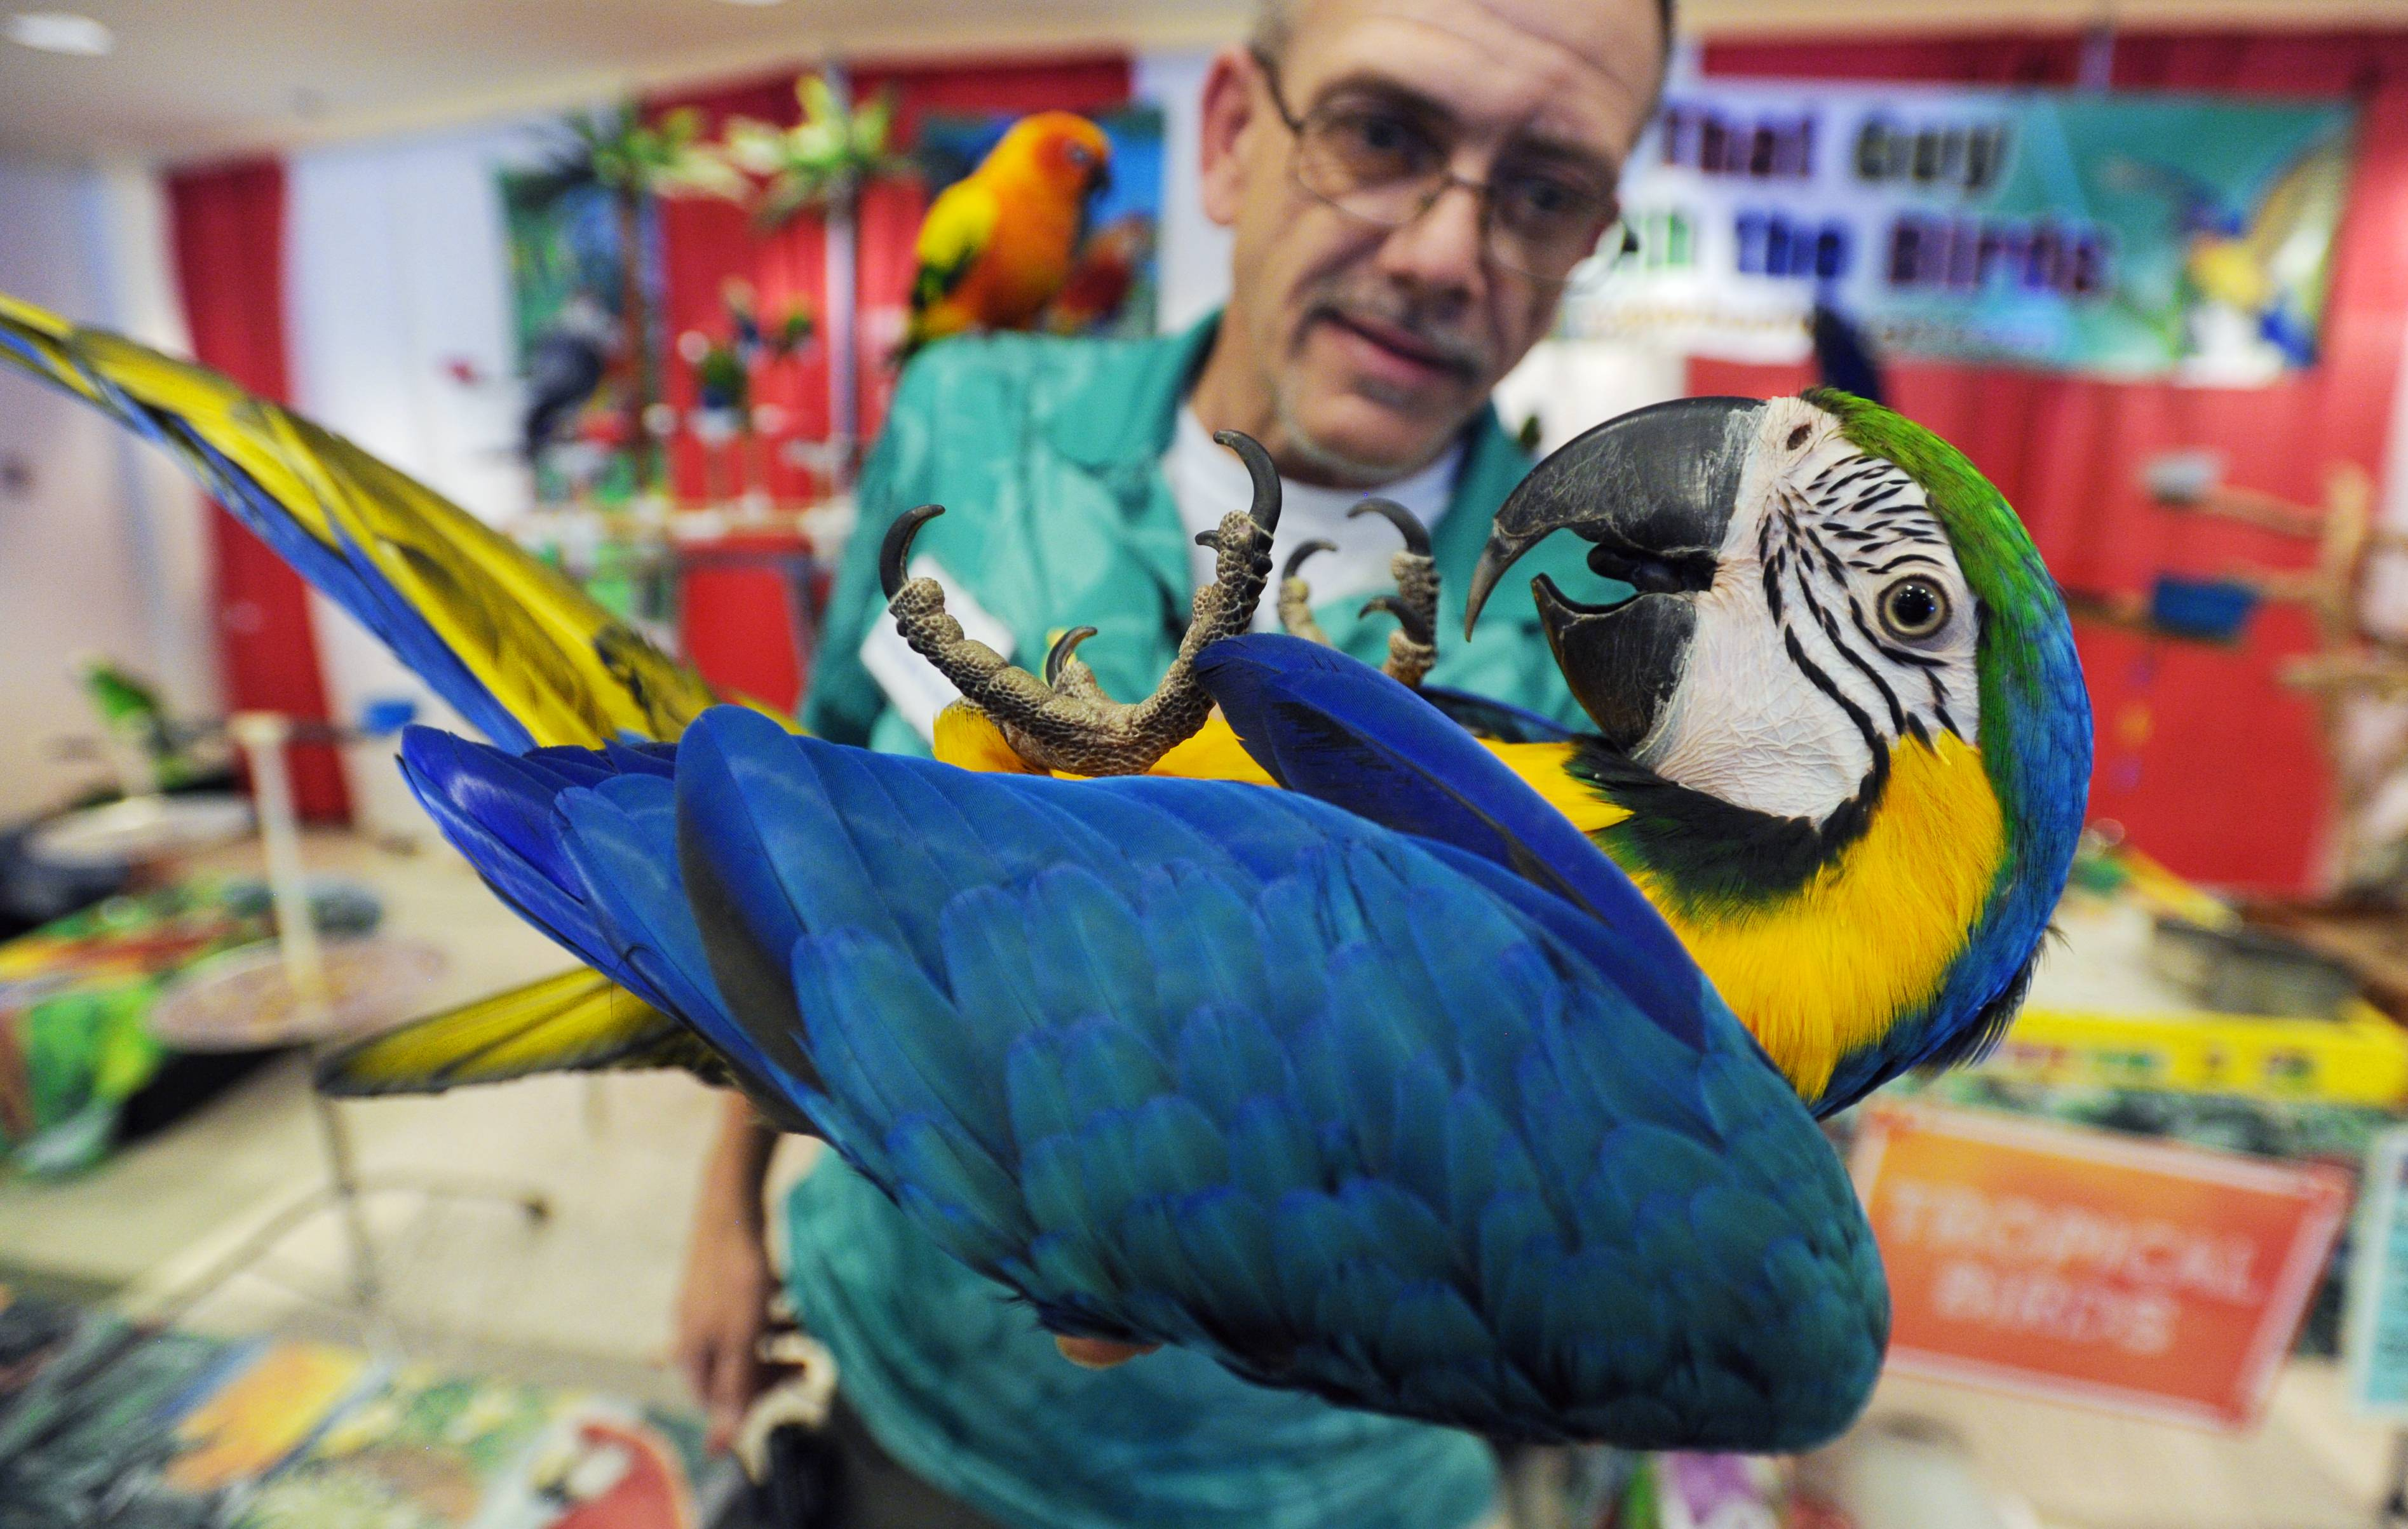 Indigo the exotic parrot does a trick for owner Kenny Sprouse of That Guy With The Birds Show on Friday at the Chicagoland Family Pet Expo at Arlington Park.